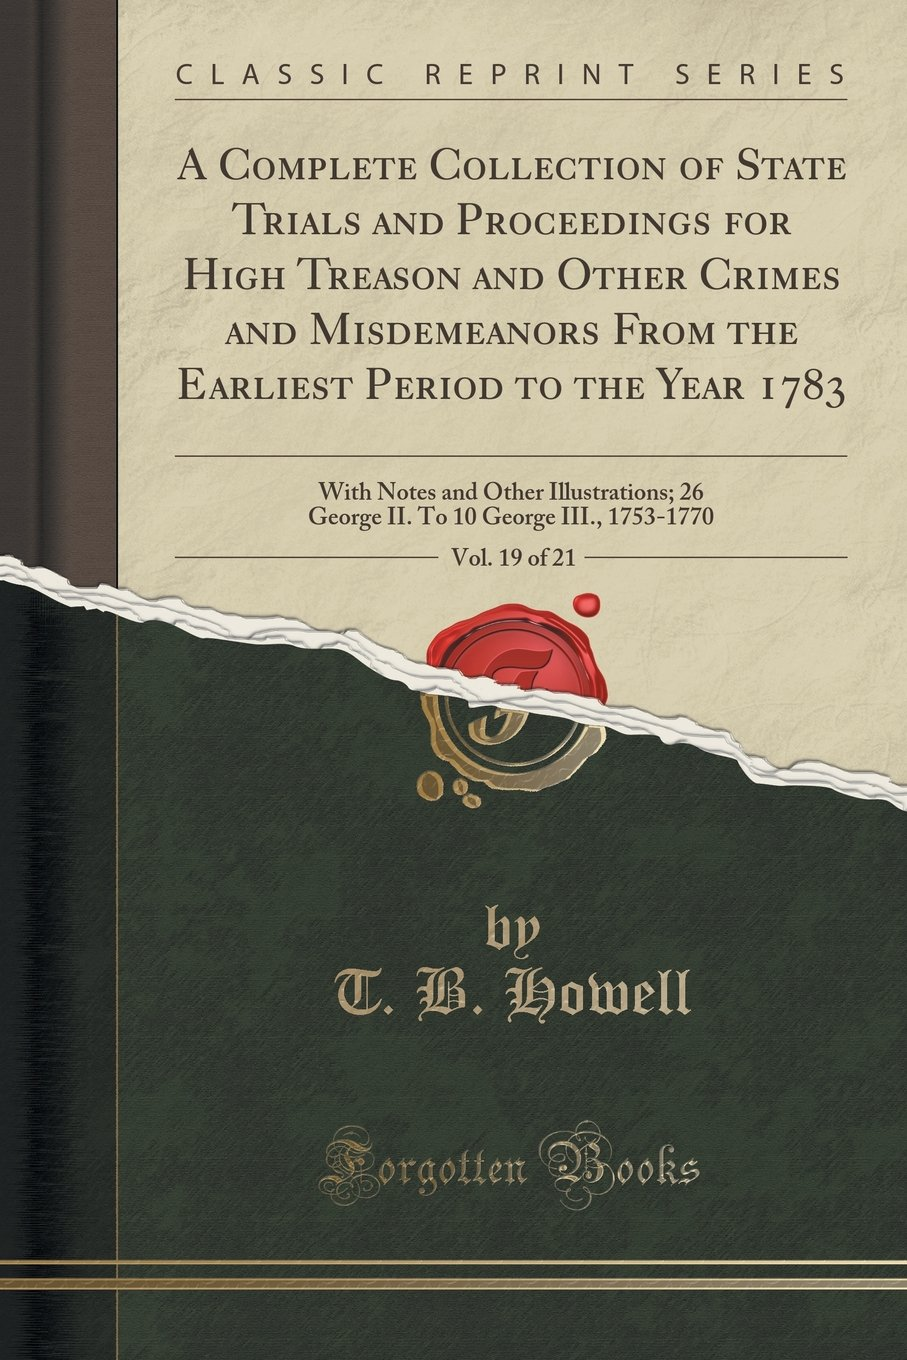 Download A Complete Collection of State Trials and Proceedings for High Treason and Other Crimes and Misdemeanors From the Earliest Period to the Year 1783, ... 26 George II. To 10 George III., 1753-1770 pdf epub